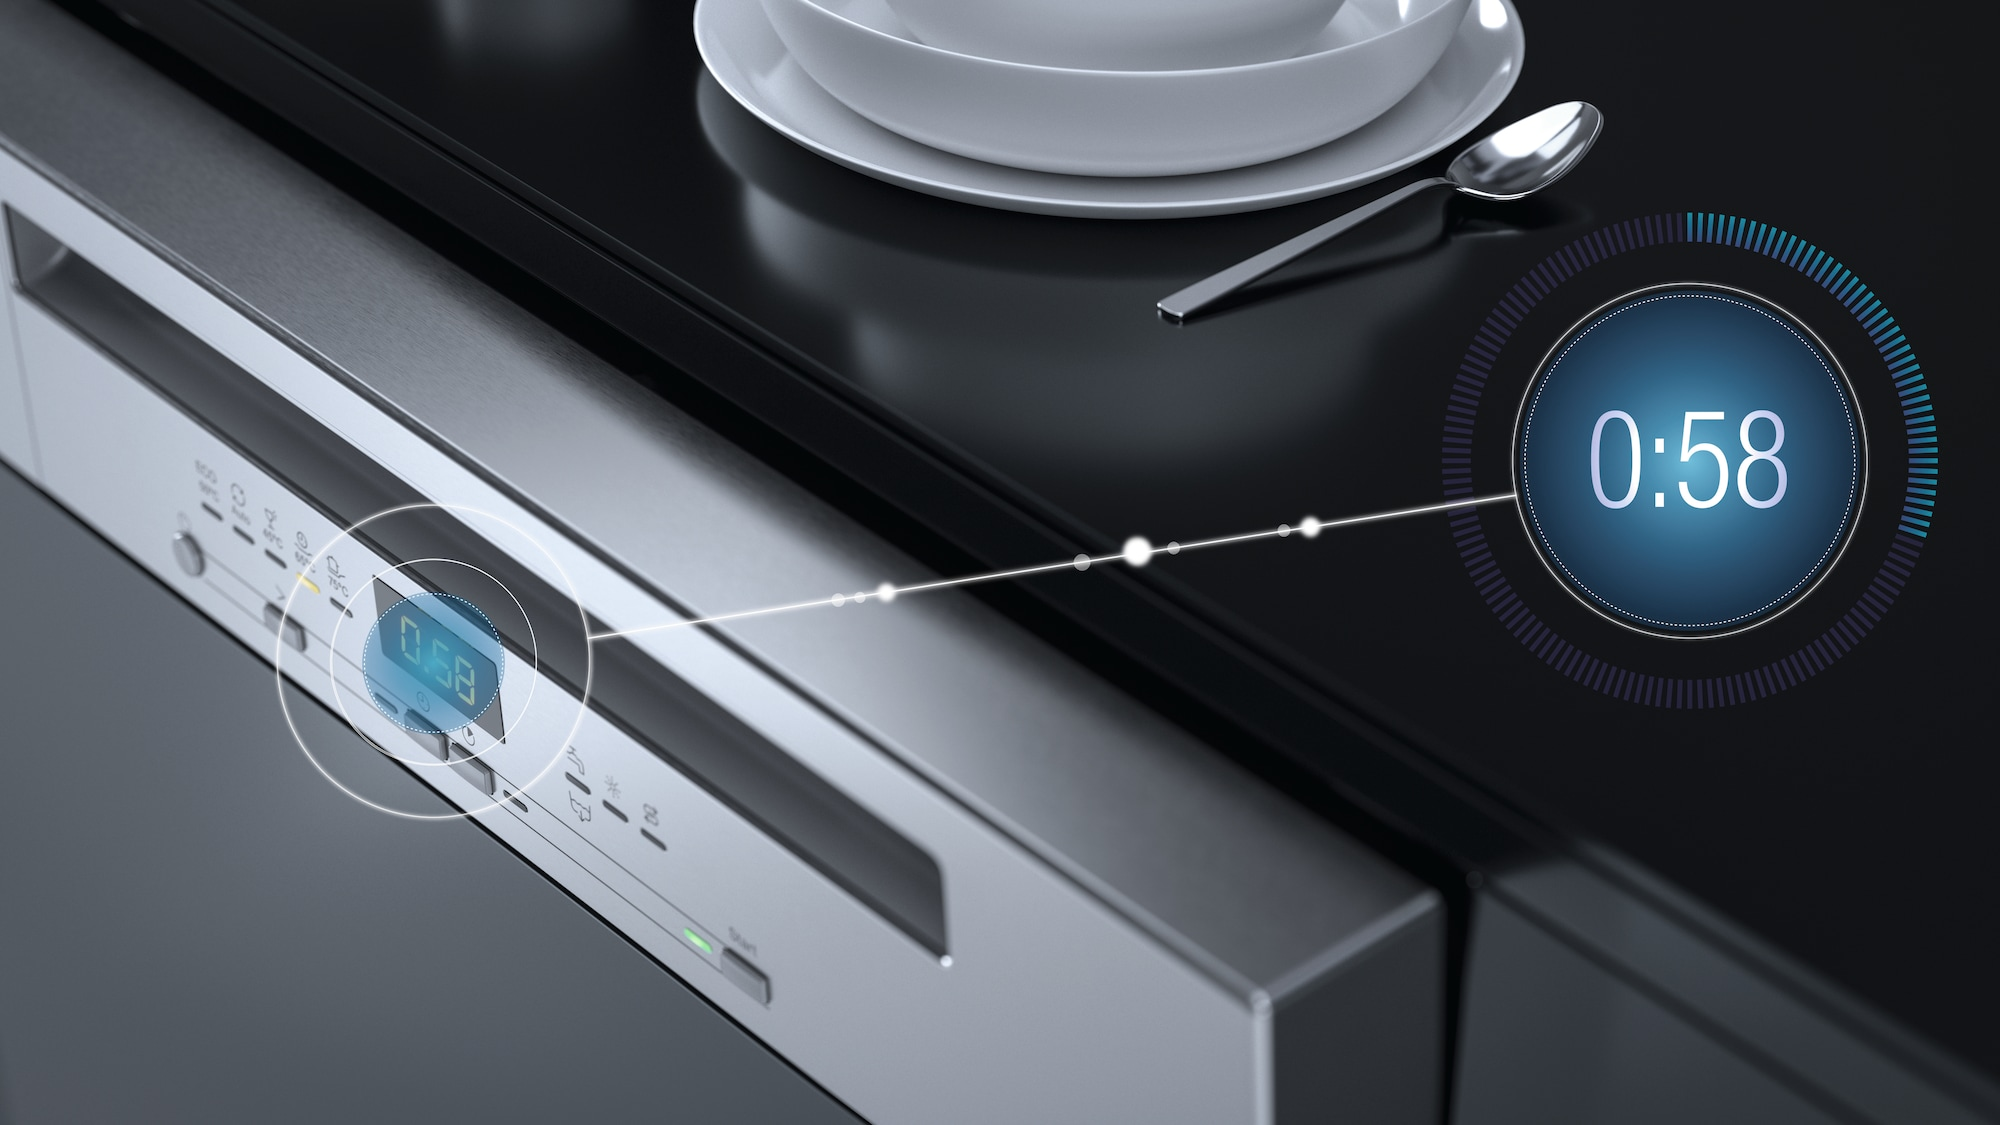 Dishes Cleaned in 58 Minutes with QuickIntense Wash